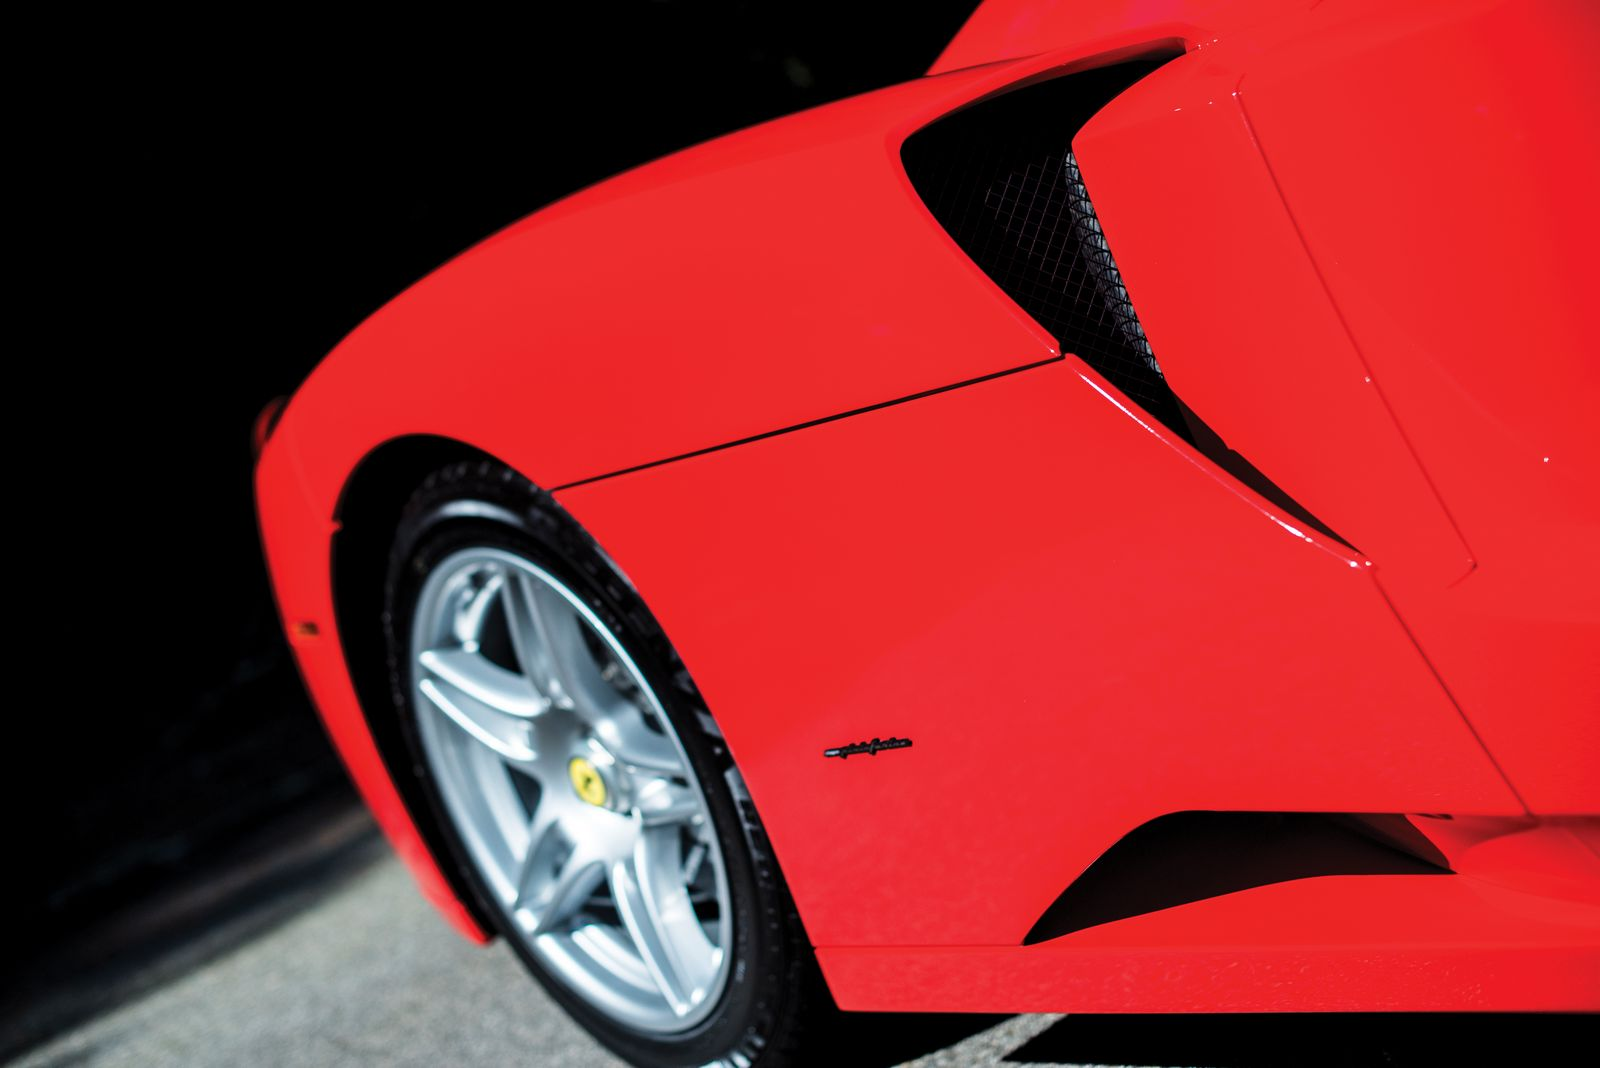 Ferrari Enzo auction -8